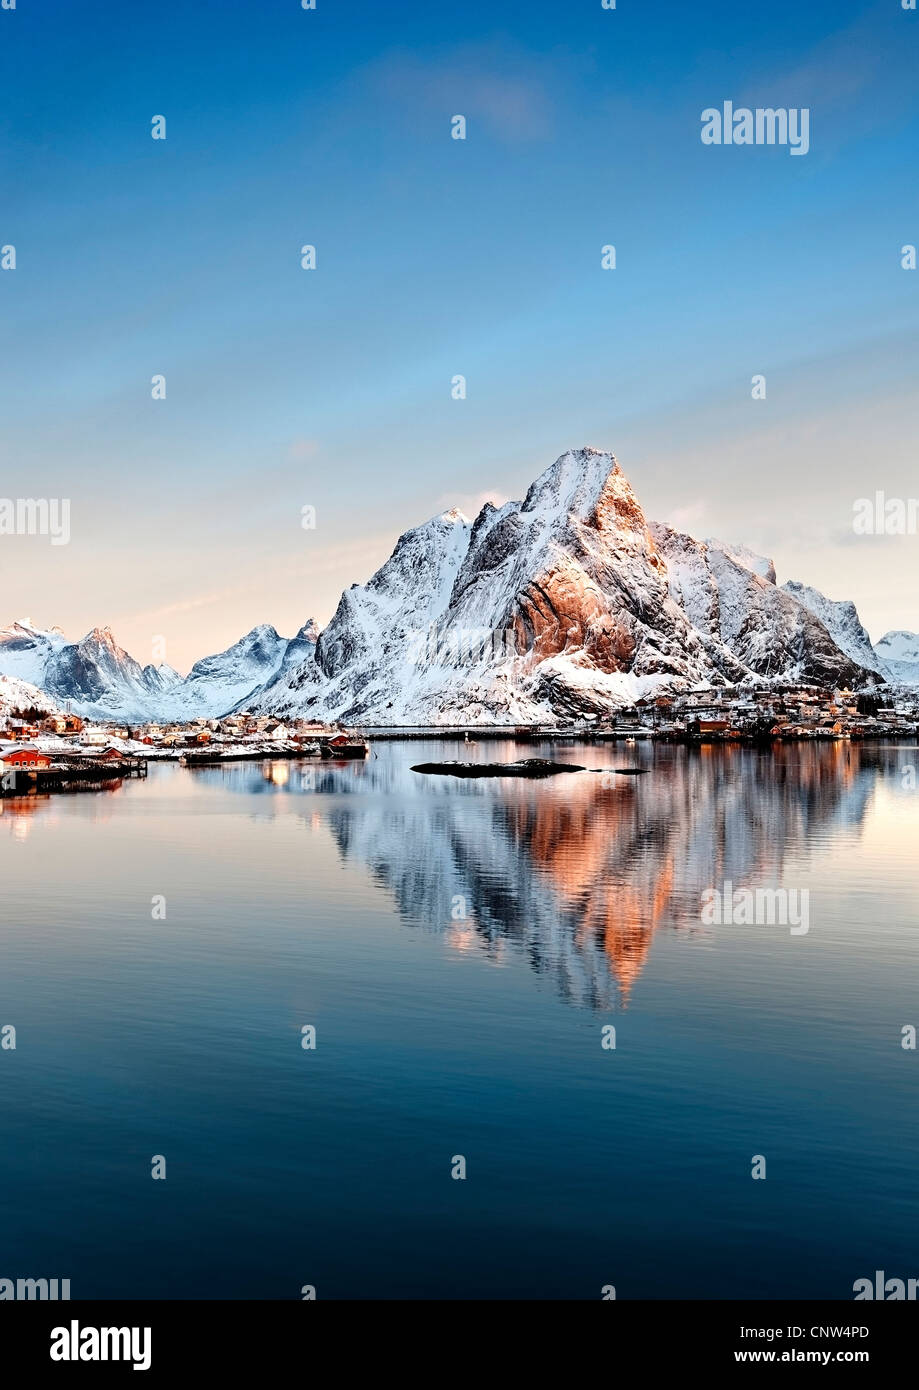 Sunrise over Olstind with Reine village in the foreground - Stock Image